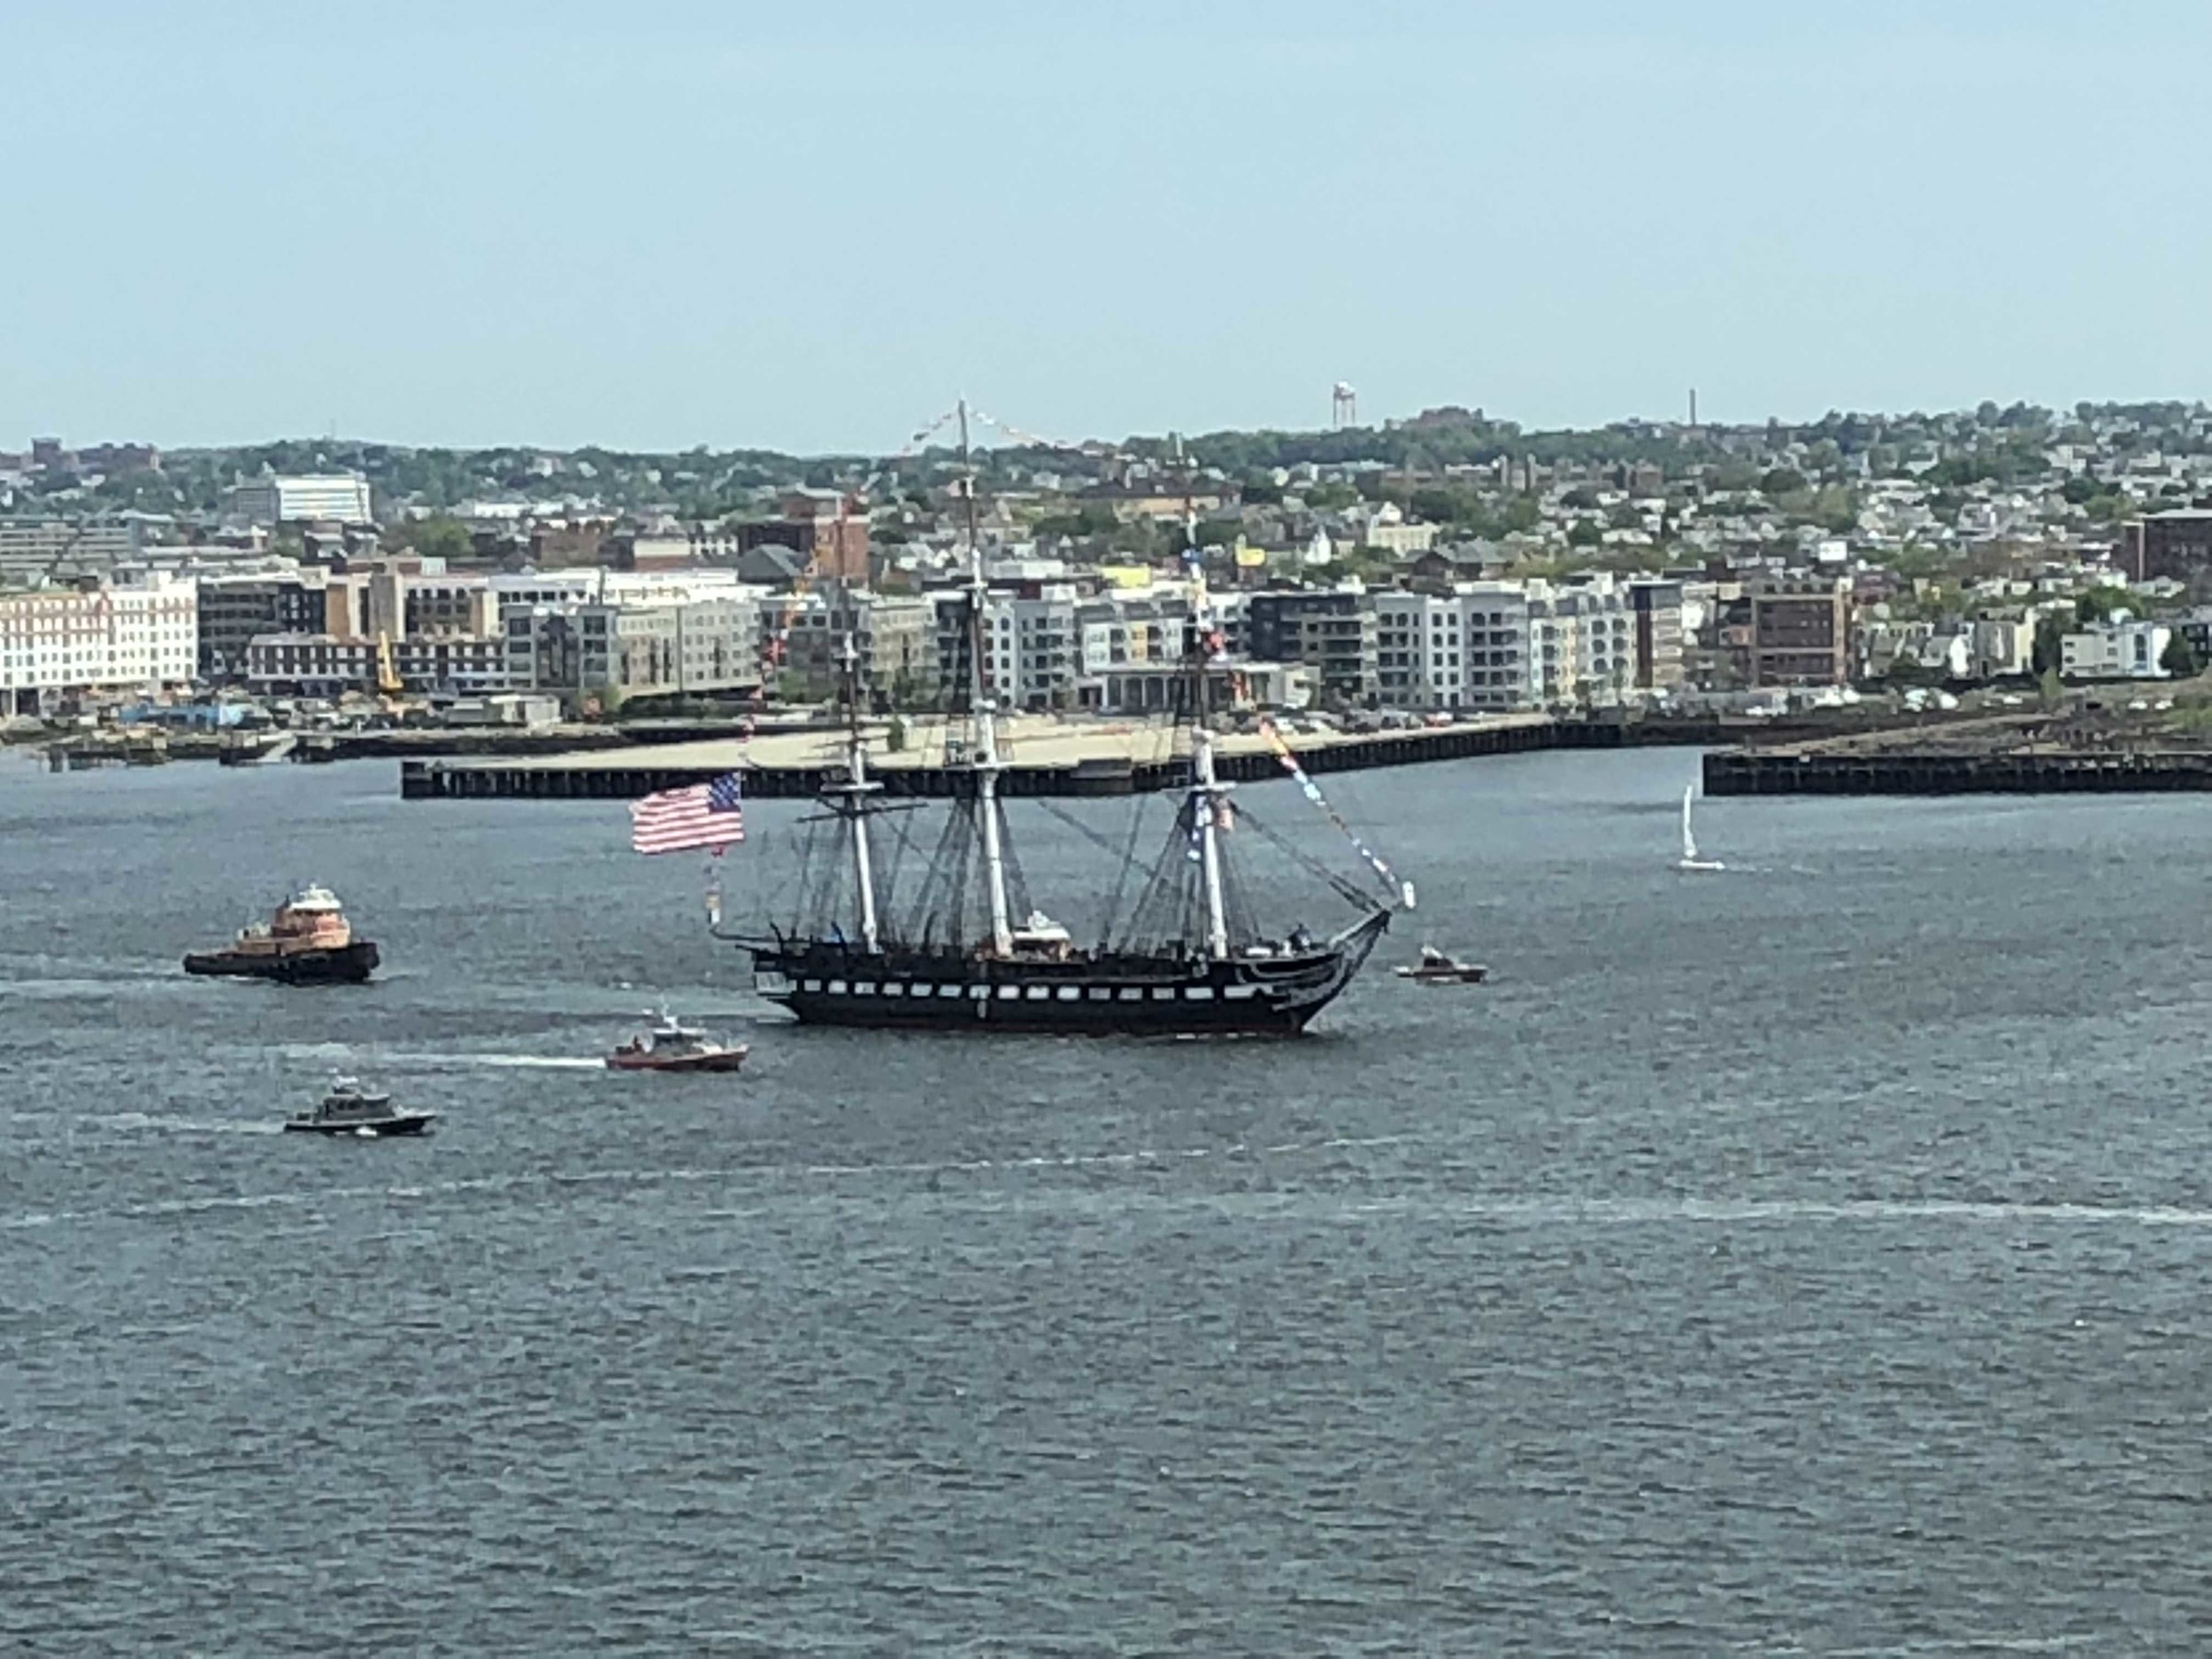 Looking out the window of my office at the USS Constitution. (Grainy photo, but I zoomed way in.)